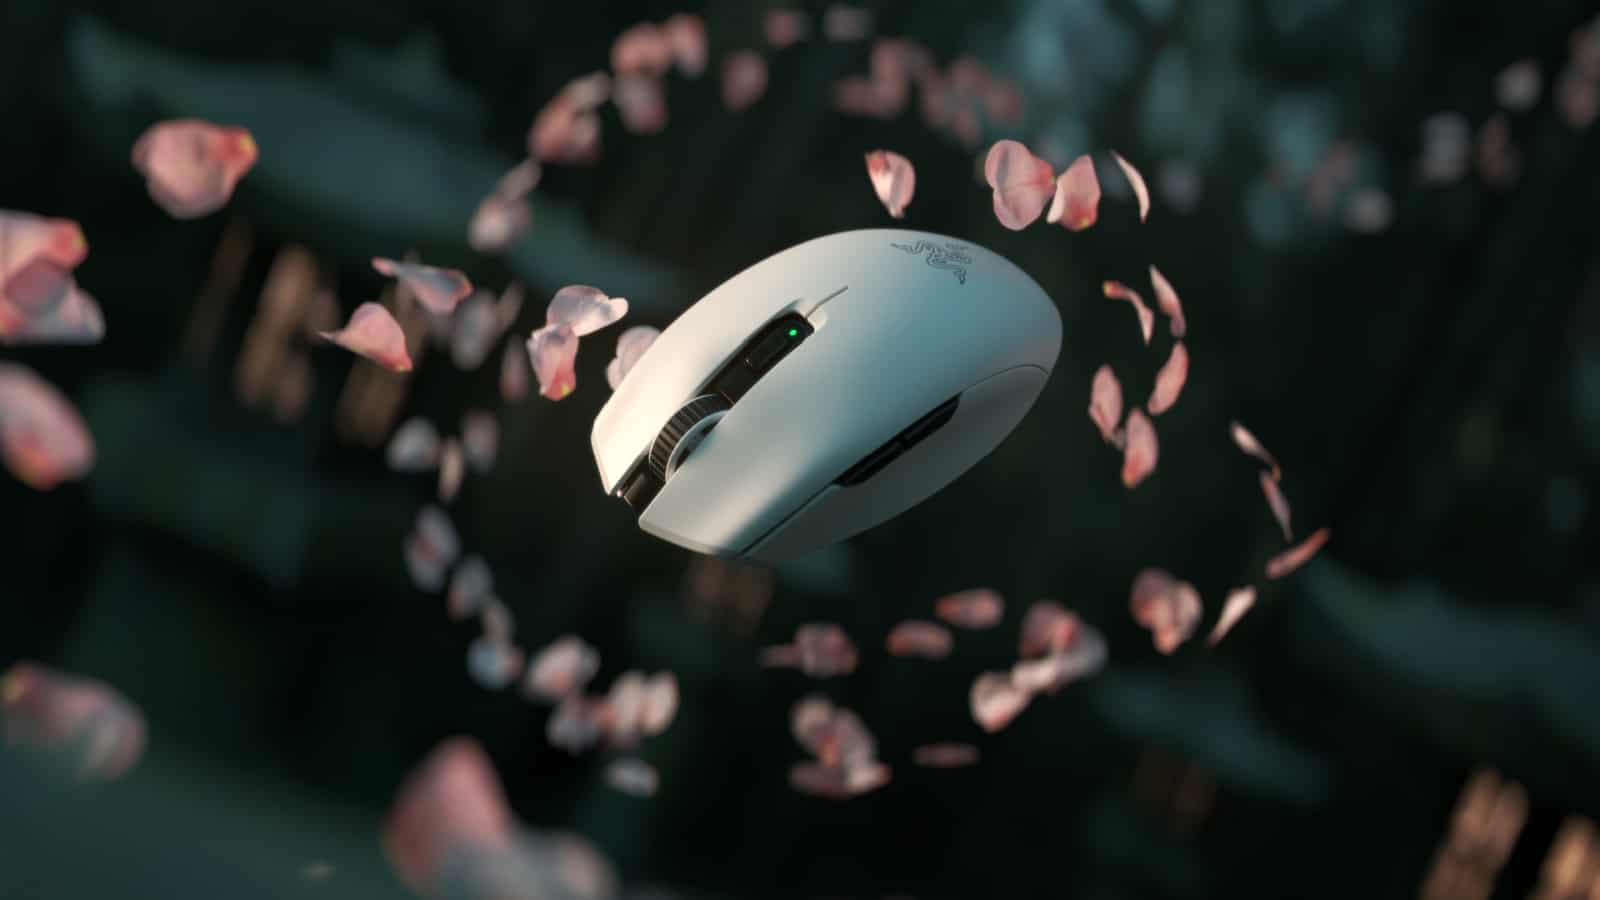 Razer's new gaming mouse has over a month of battery life